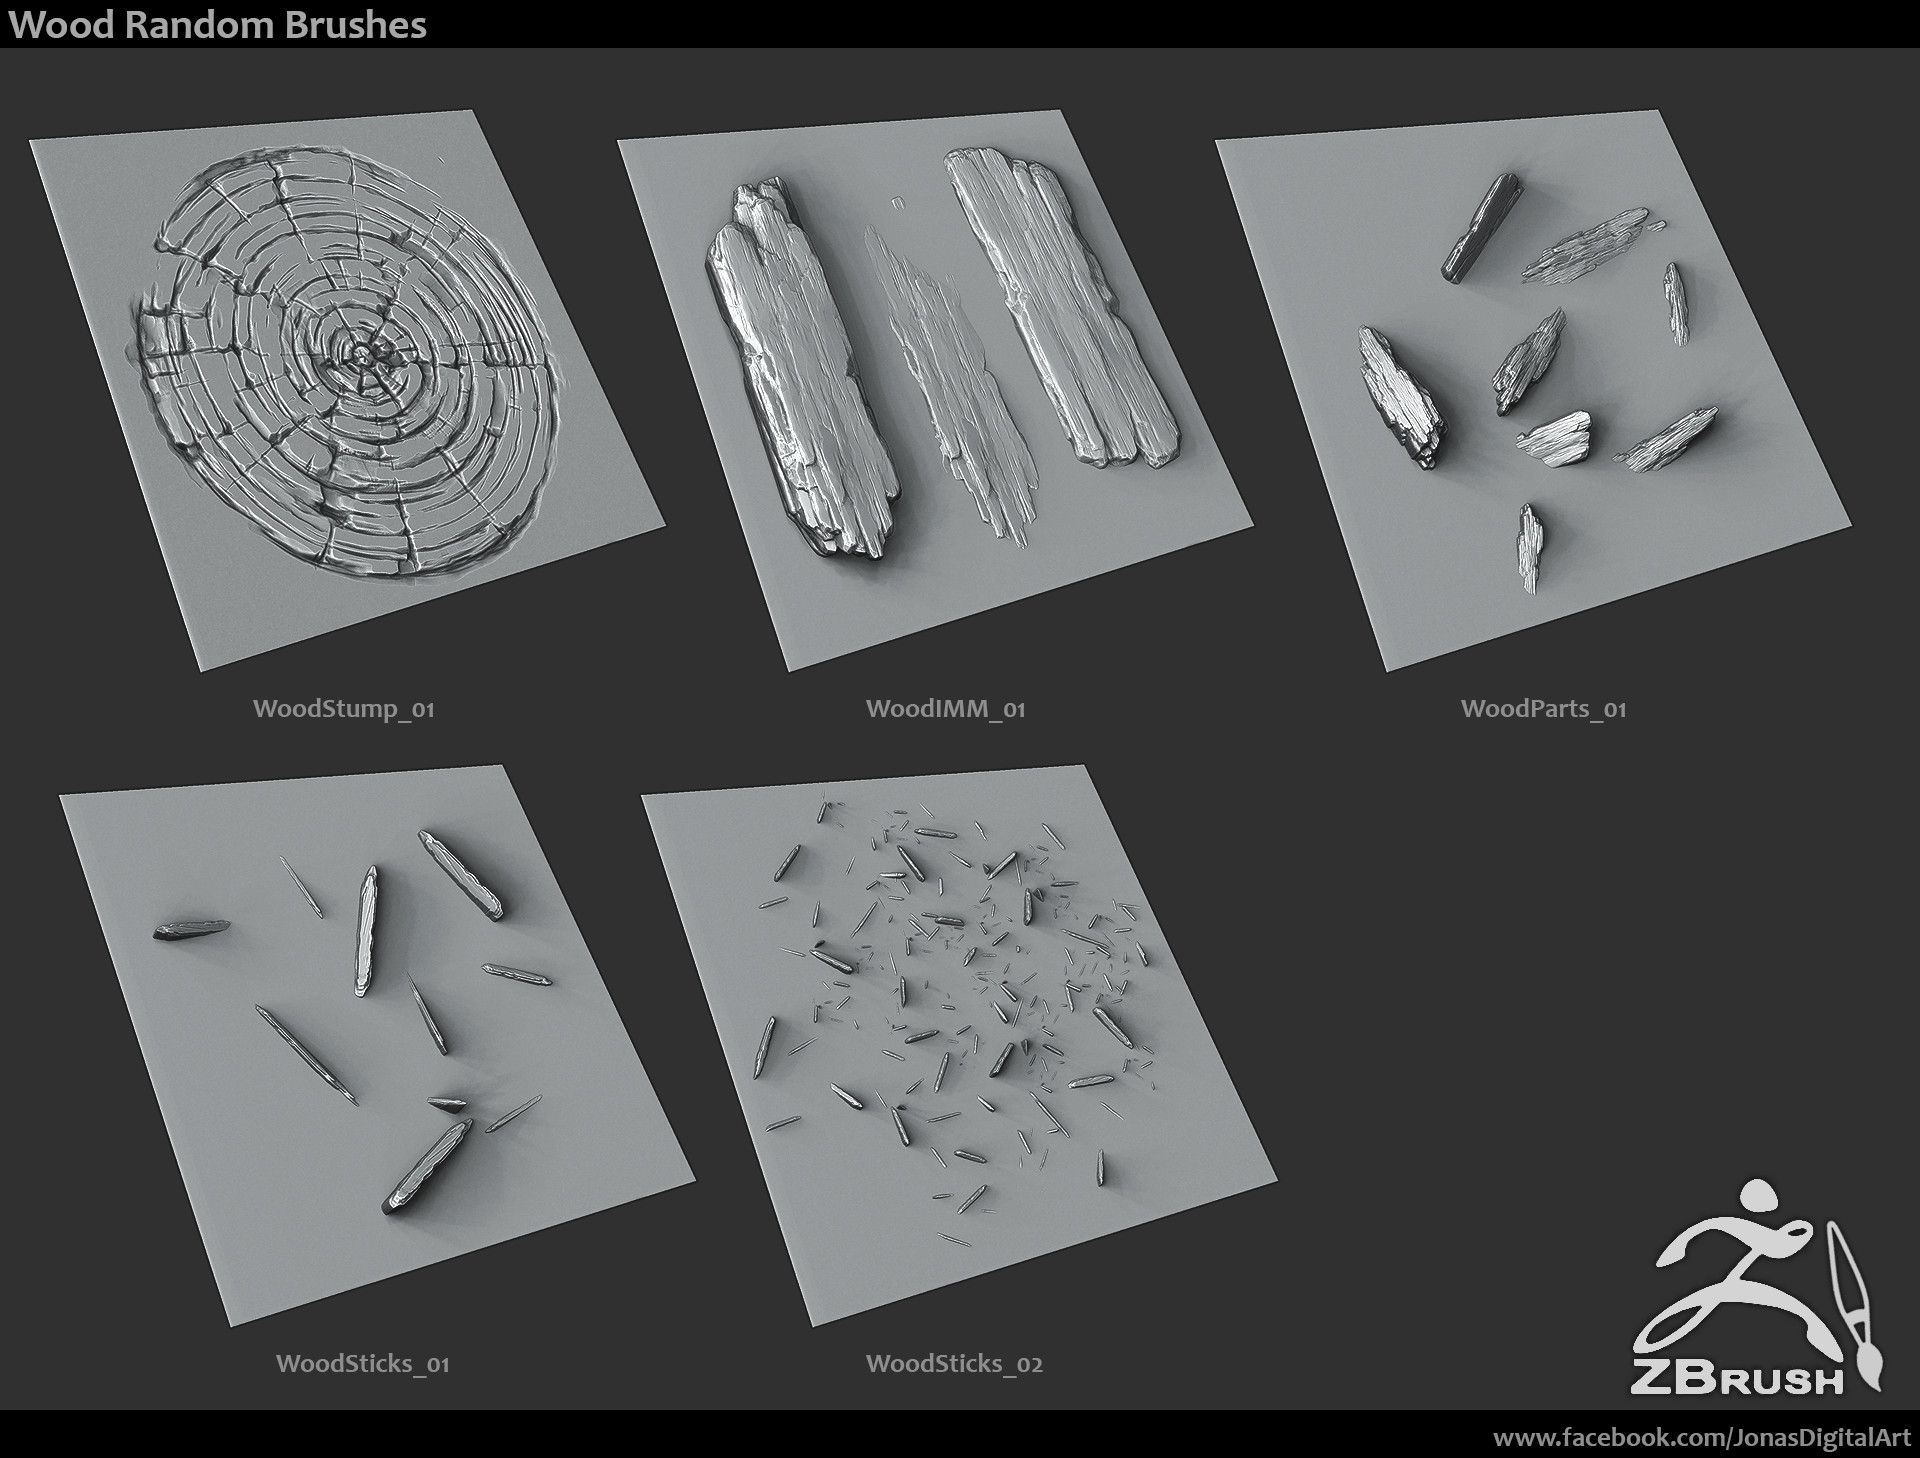 Zbrush 4R4 Download Cracked - glolost